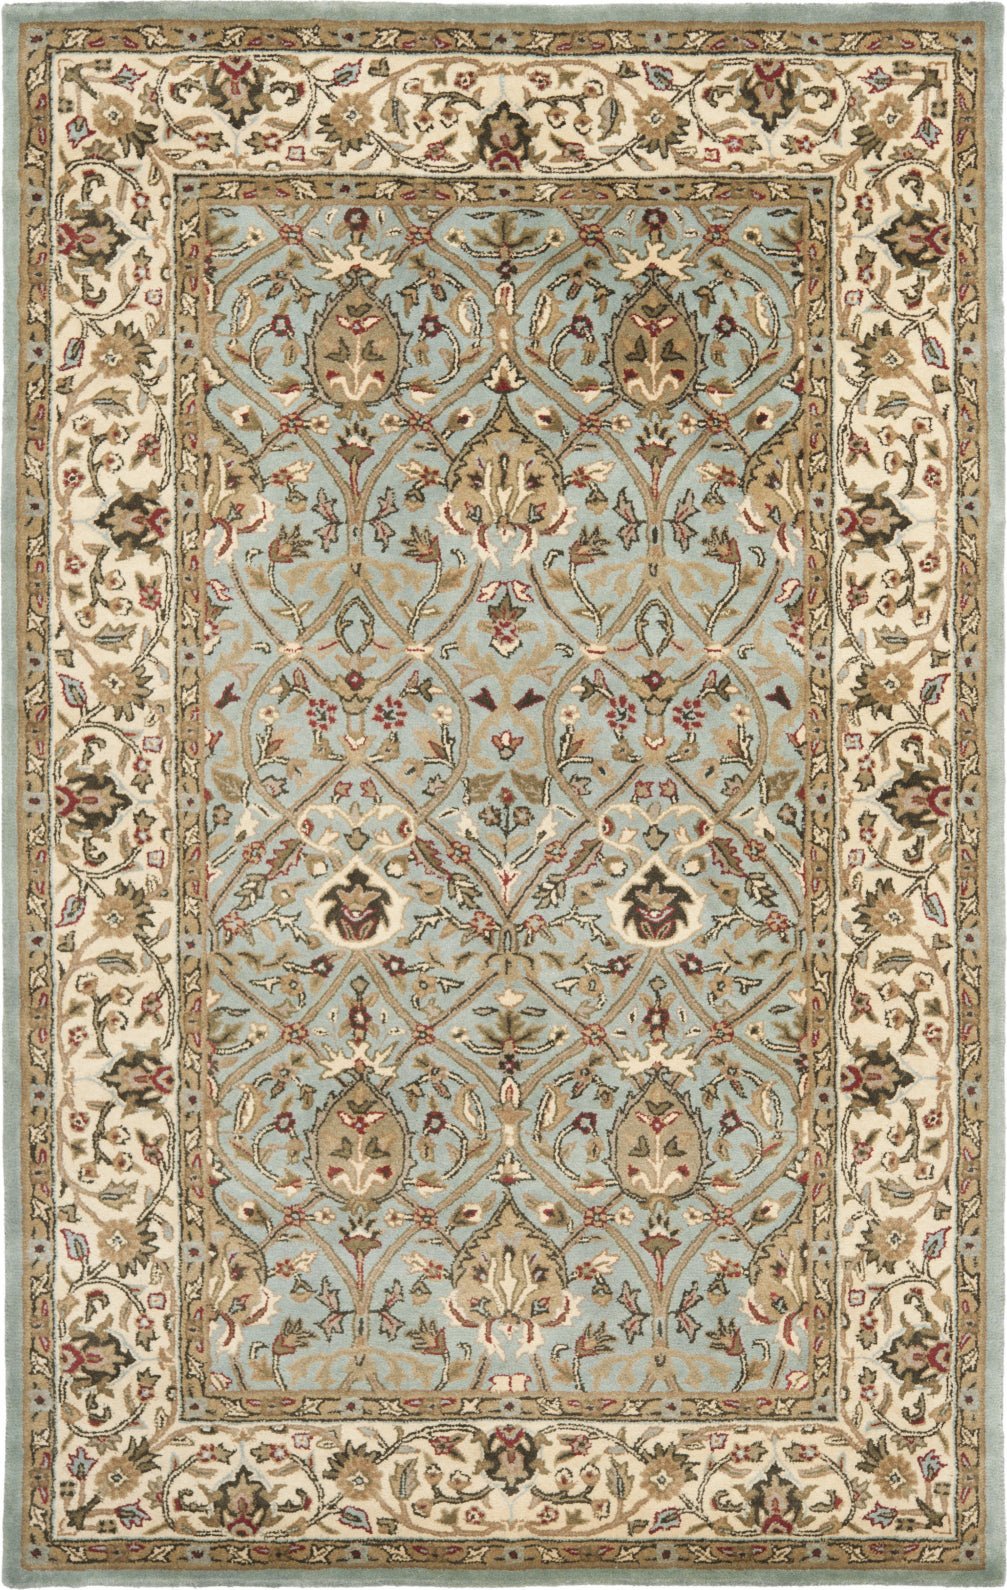 Safavieh Persian Legend Pl819 Grey/Ivory Area Rug main image